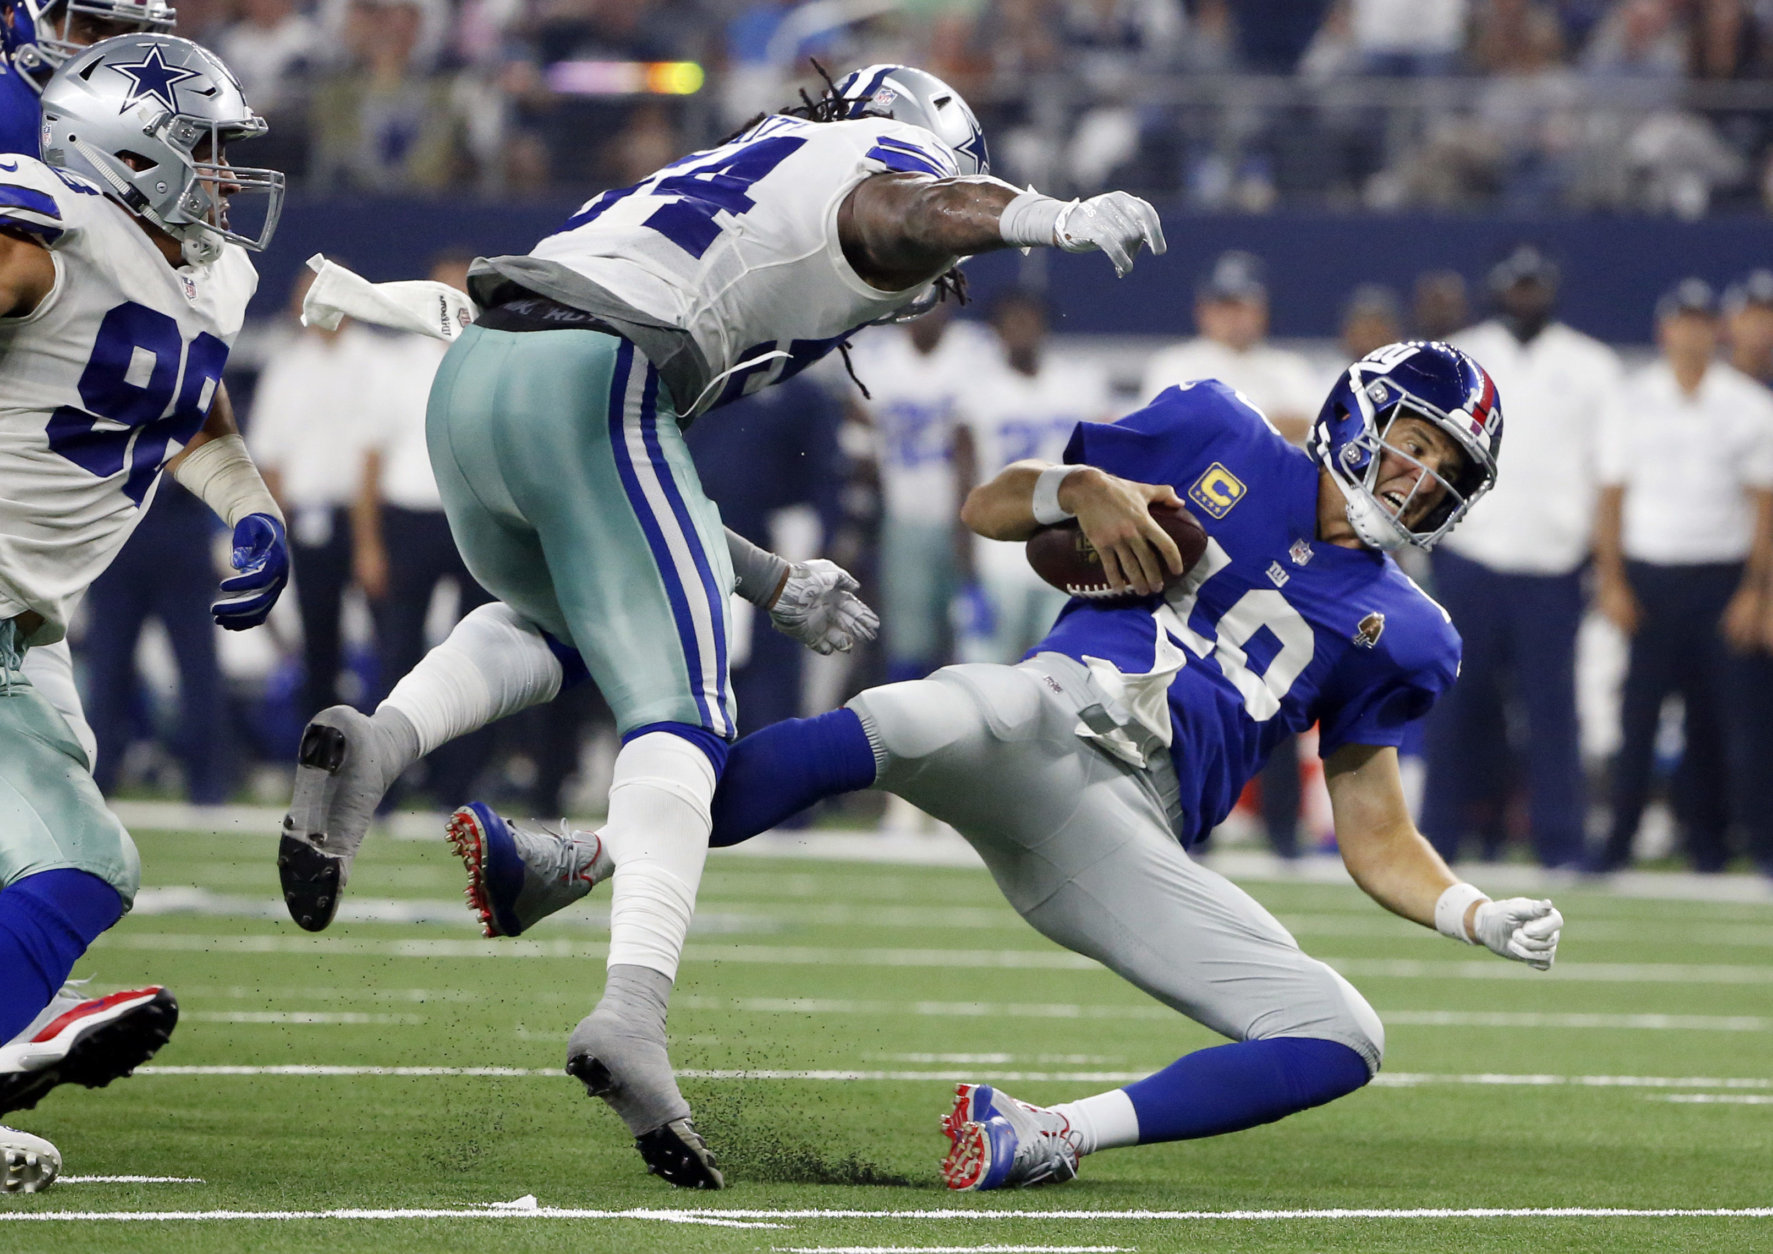 New York Giants quarterback Eli Manning (10) falls after taking a hit from Dallas Cowboys linebacker Jaylon Smith (54) during the second half of an NFL football game in Arlington, Texas, Sunday, Sept. 16, 2018. (AP Photo/Michael Ainsworth)